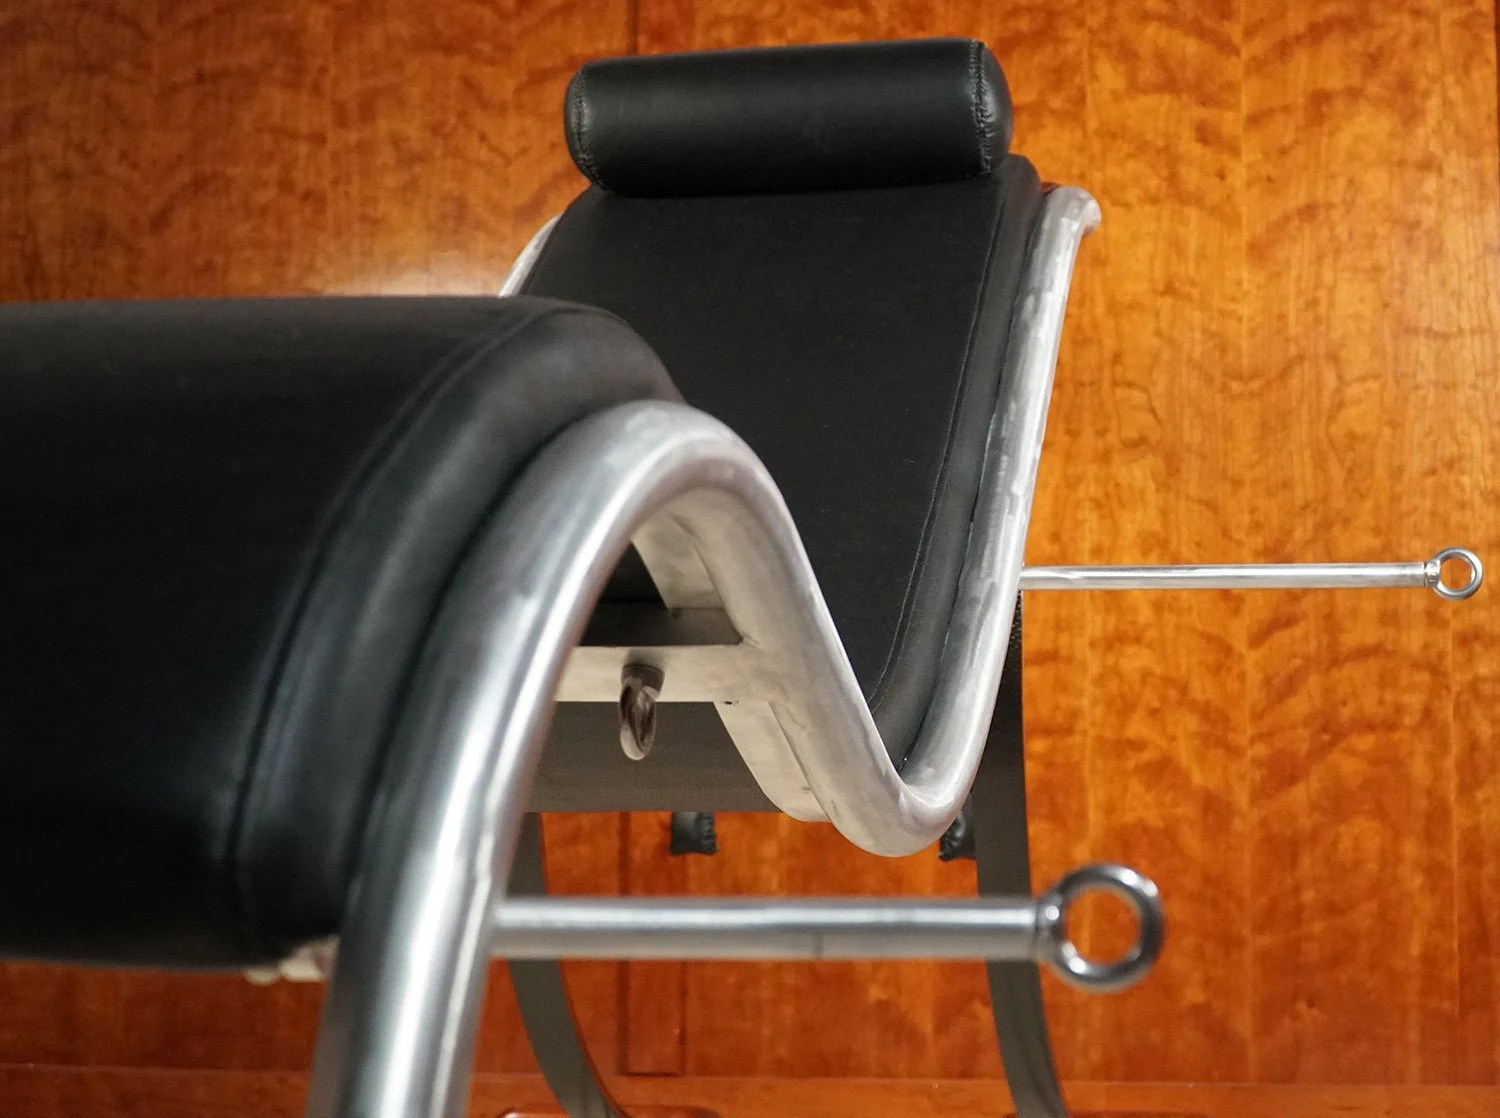 Best Sex Chair Luxury Bdsm Sex Furniture Brushed Aluminum Carbon Fiber And Your Choice Of Wood Bondage And Domination Fetish Package